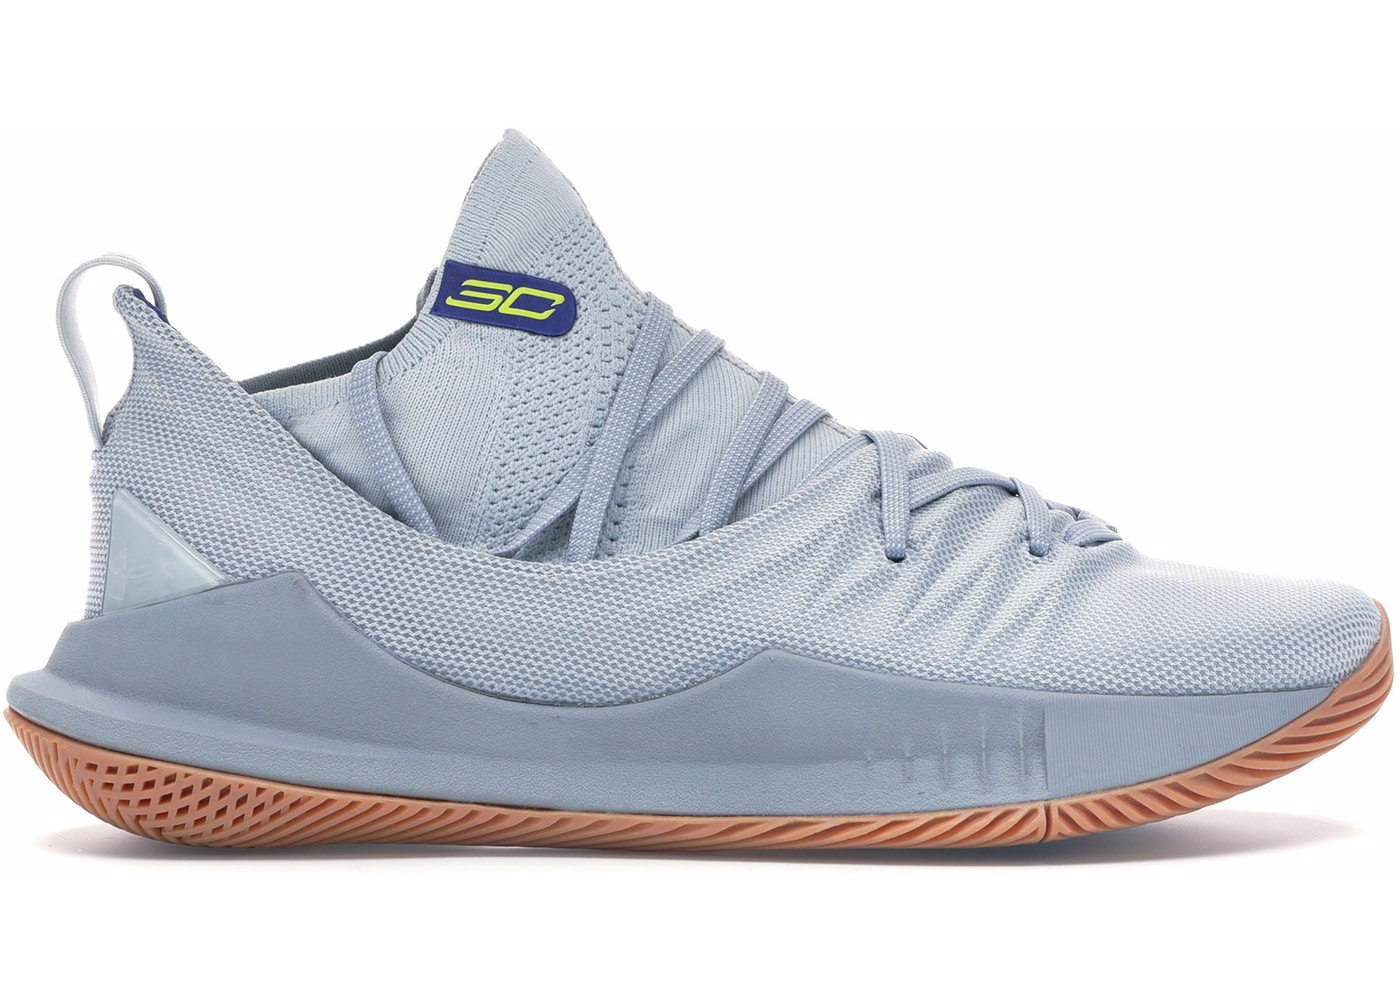 reputable site 9bd35 99f5c Buy Under Armour Shoes & Deadstock Sneakers